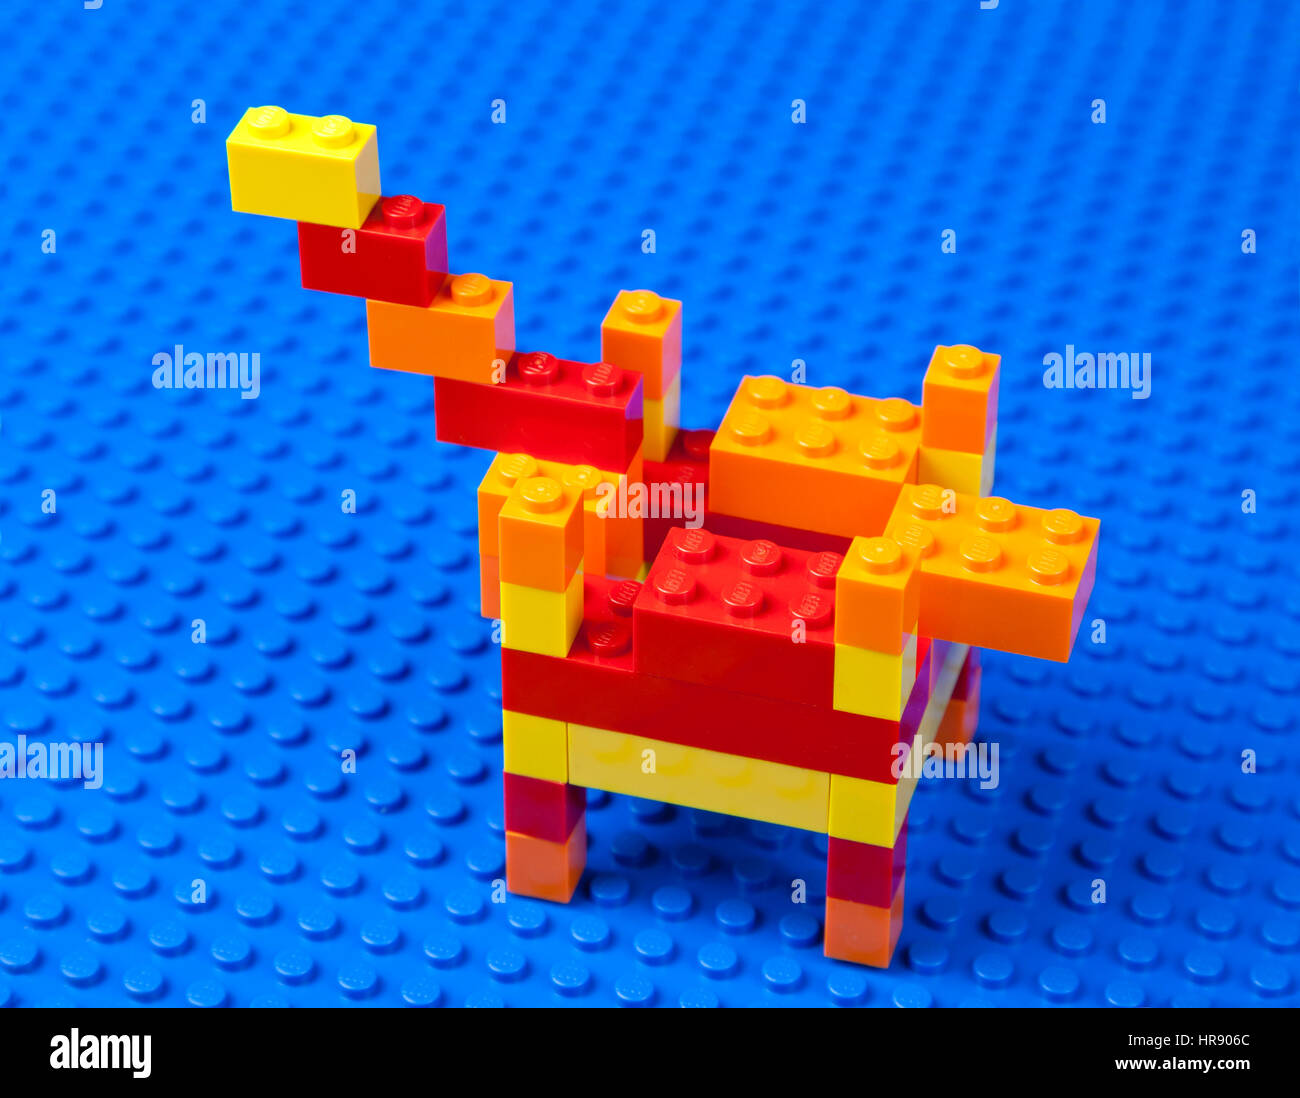 Colourful Lego brick model of an offshore oil platform on a blue Lego base plate - Stock Image